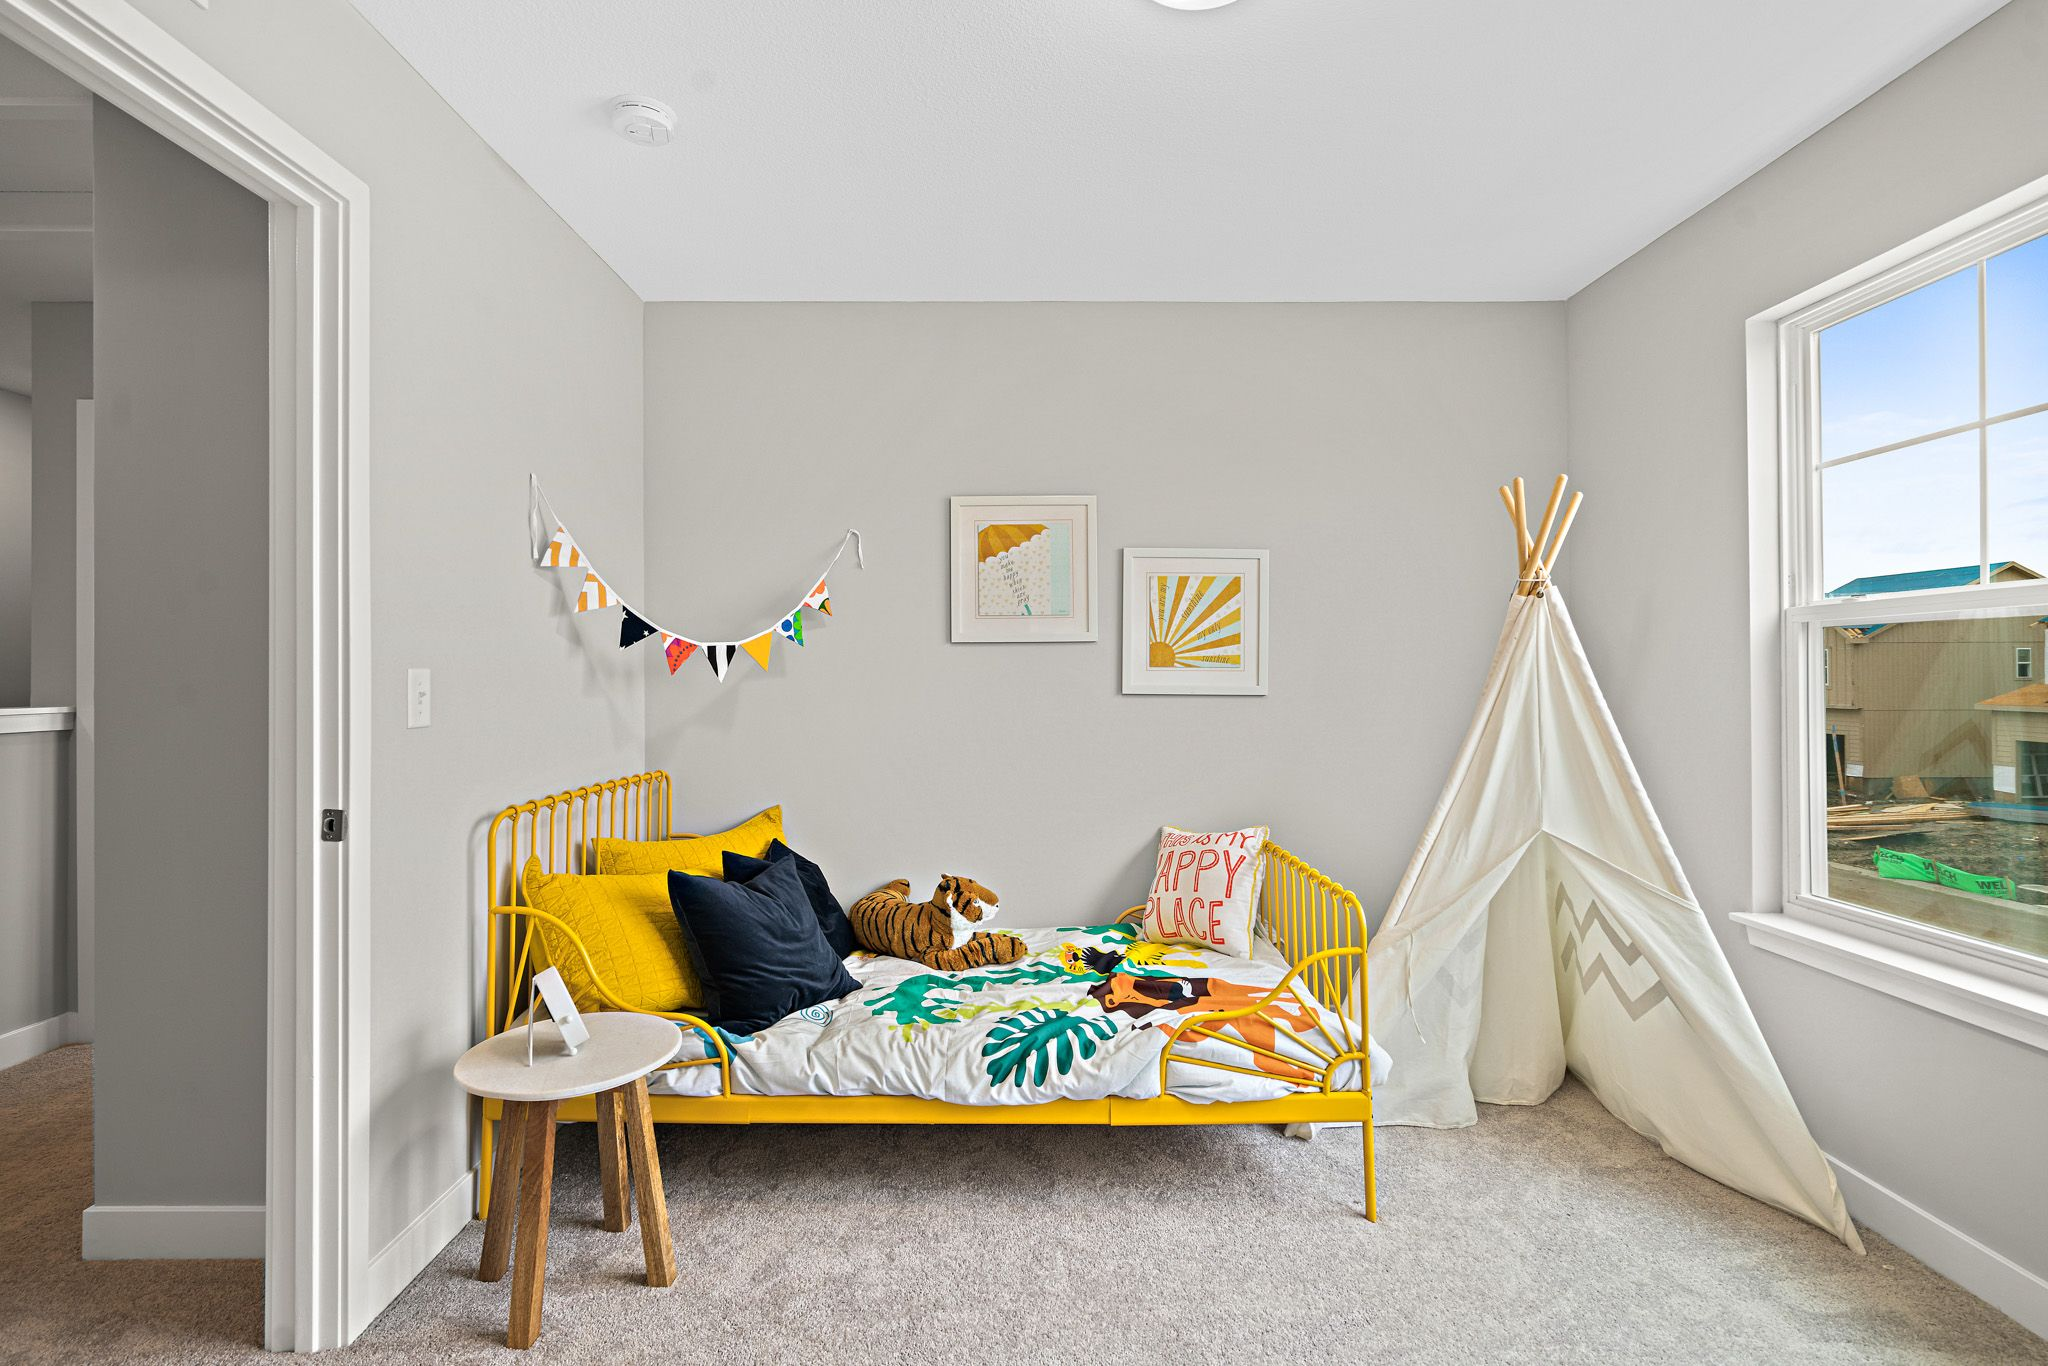 Bedroom featured in the sienna By clover & hive in Kansas City, MO